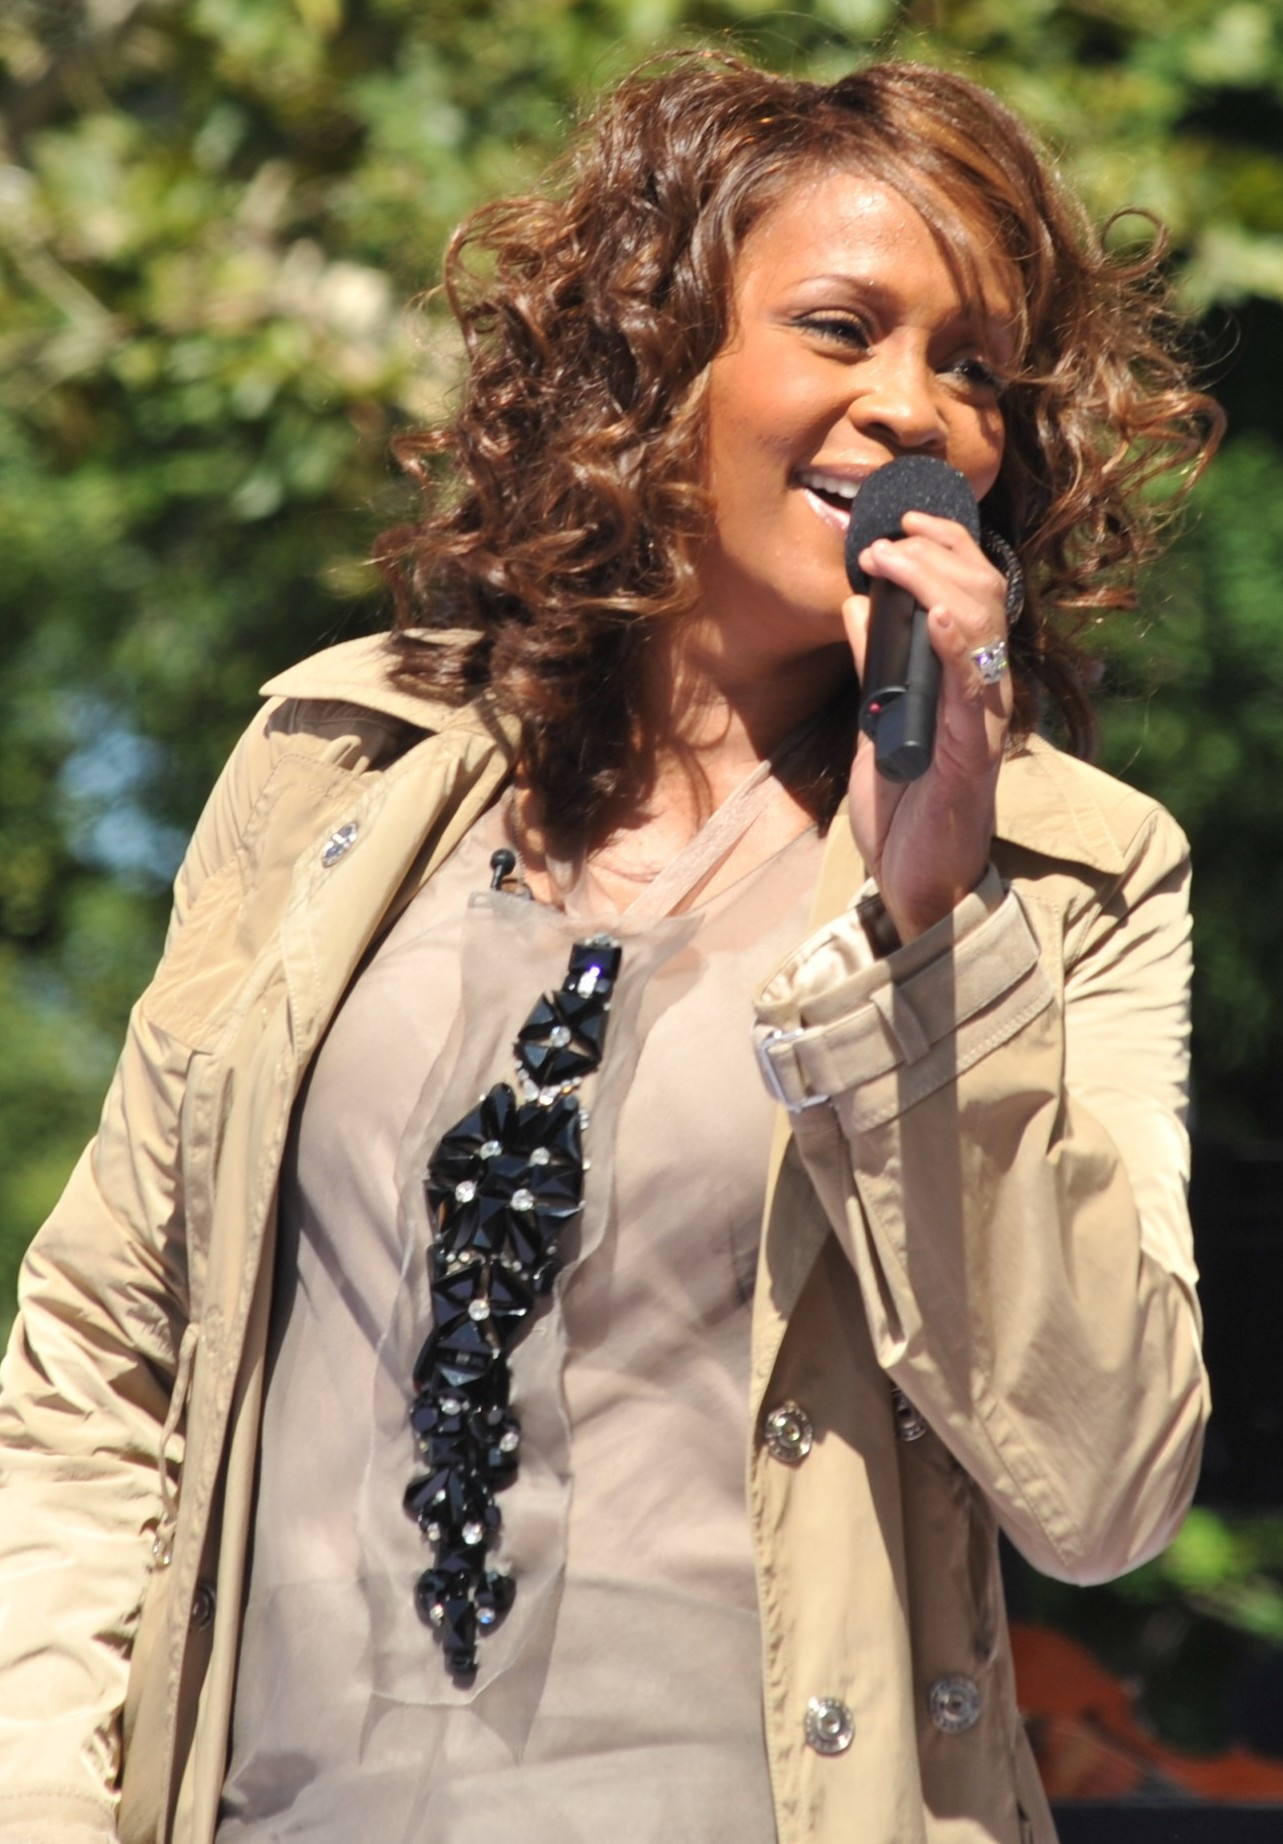 https://i0.wp.com/upload.wikimedia.org/wikipedia/commons/0/0f/Flickr_Whitney_Houston_performing_on_GMA_2009_4.jpg